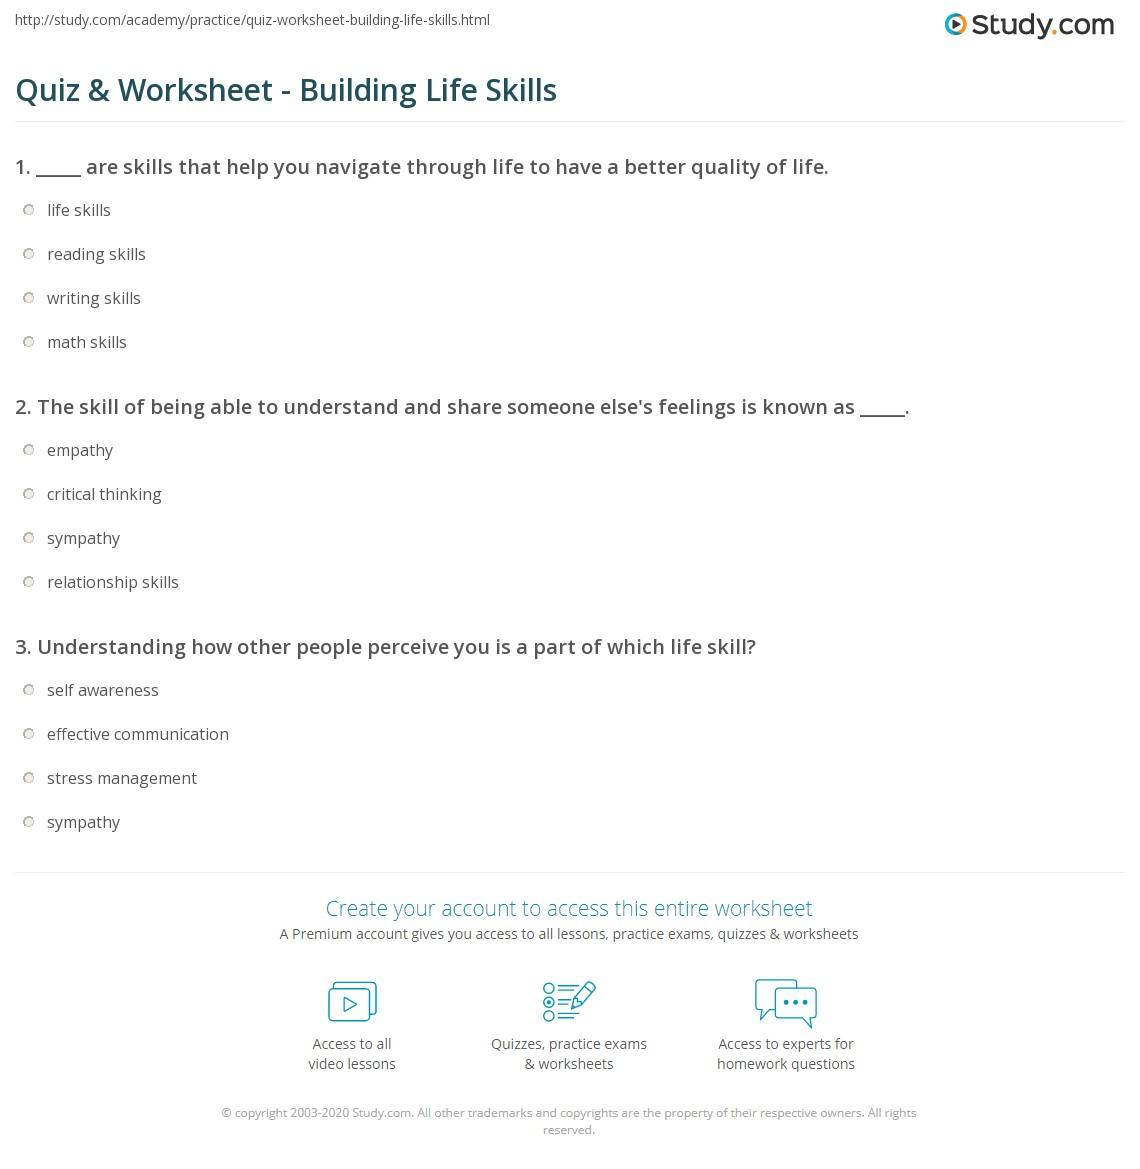 quiz worksheet building life skills. Black Bedroom Furniture Sets. Home Design Ideas